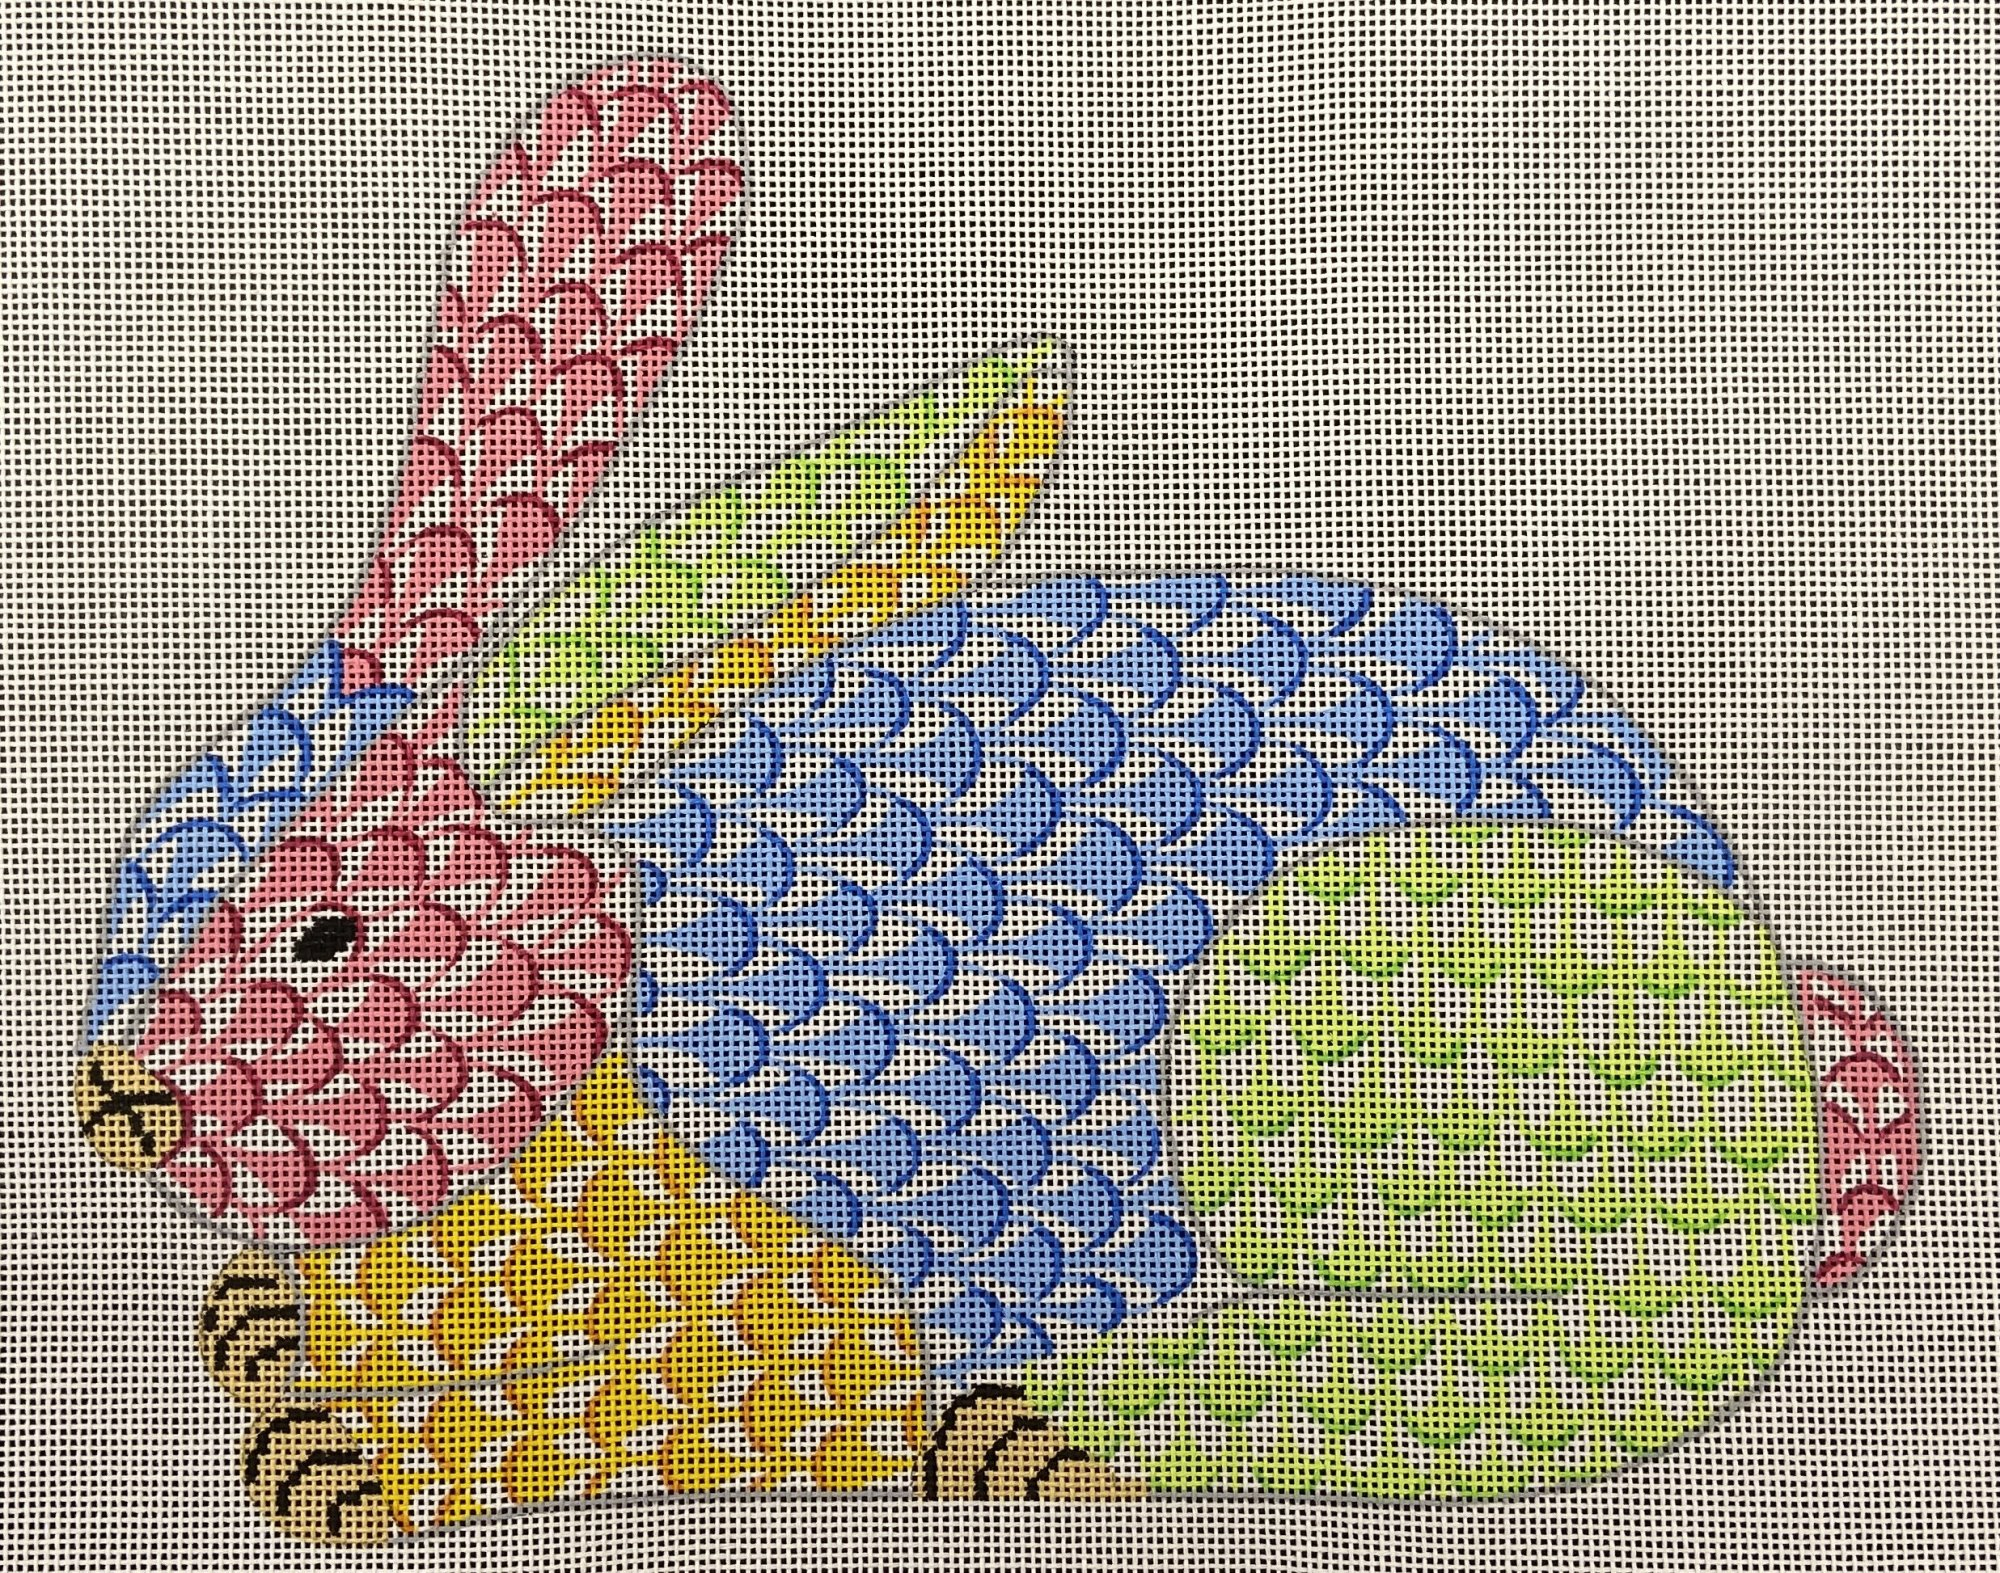 SST336 Fishnet Patchwork Bunny Kate Dickerson